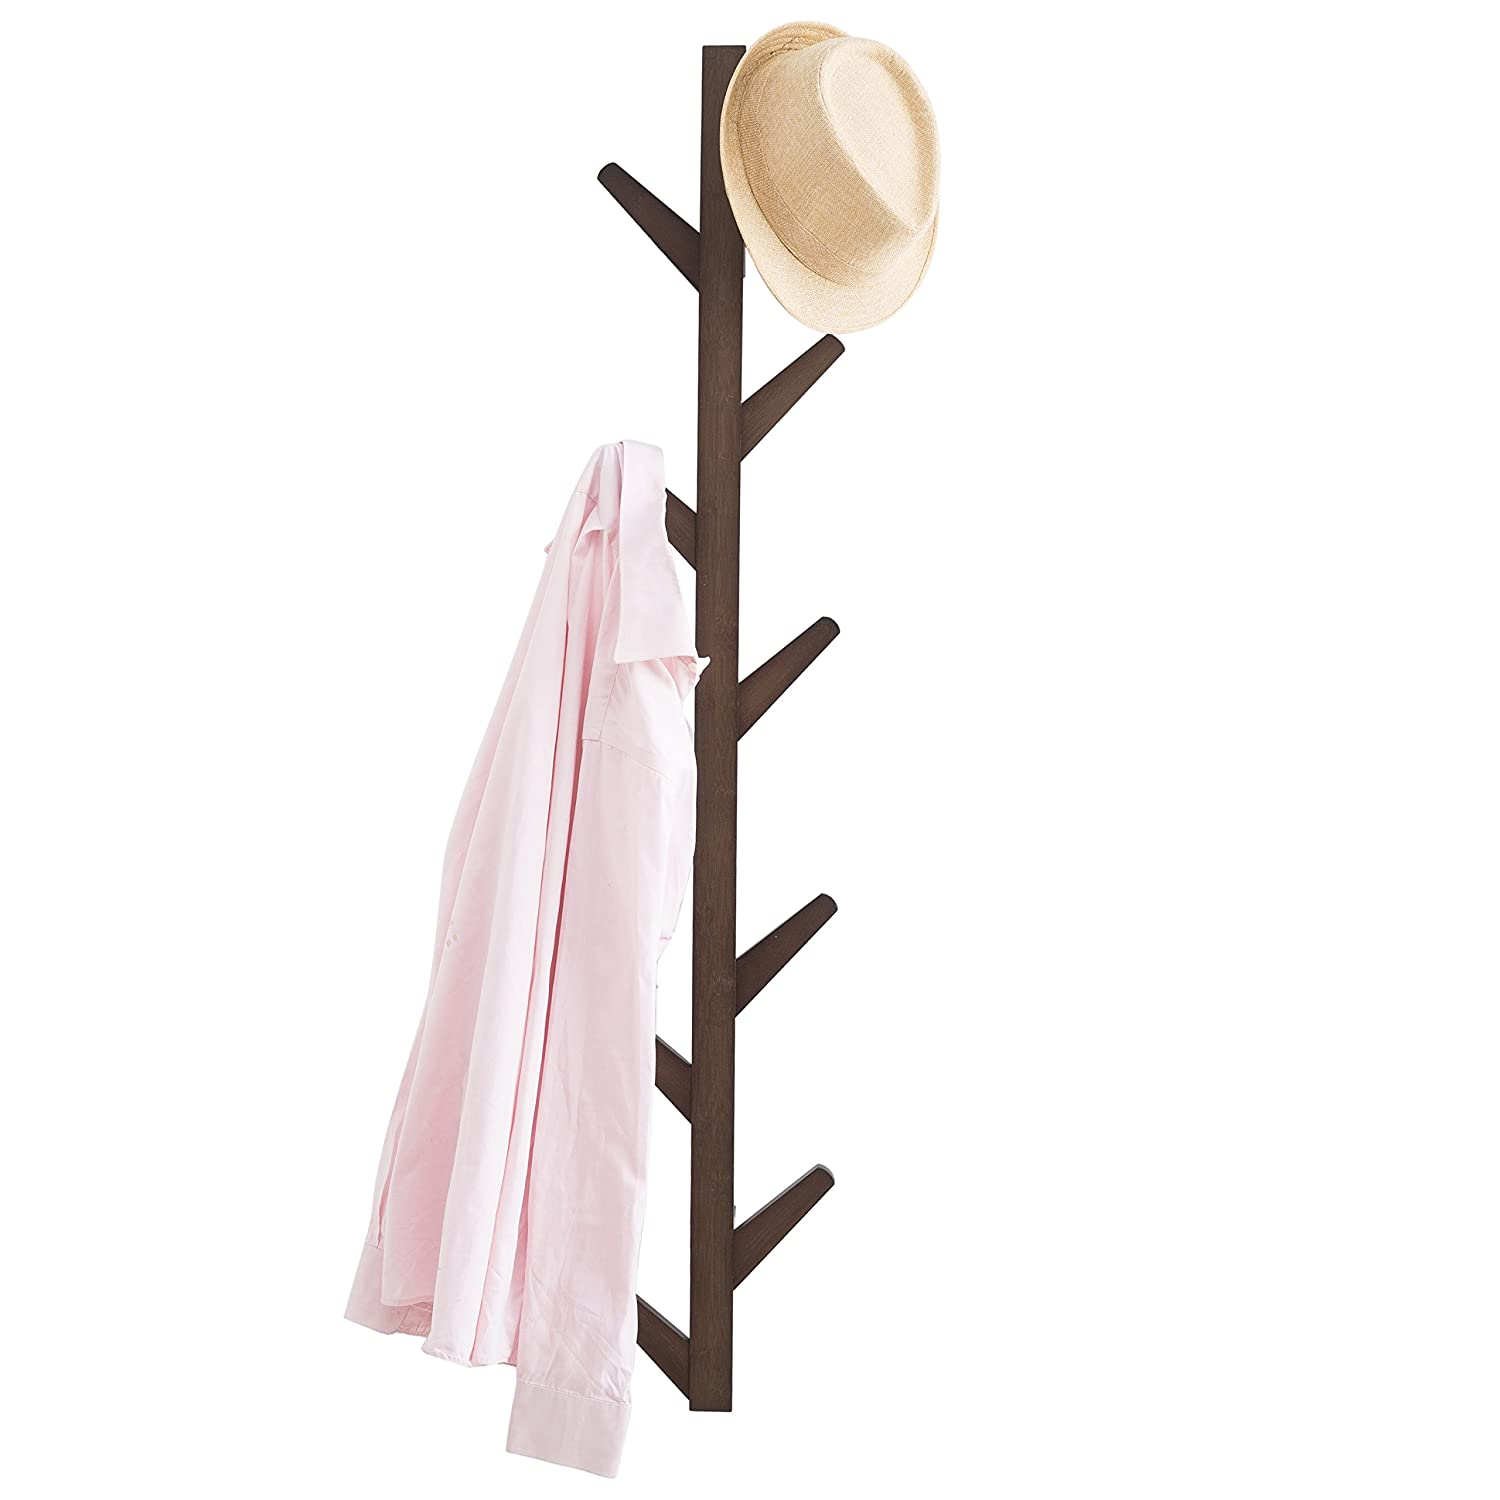 MyGift Tree Branch Design 10 Hook Bamboo Wood Wall-Mounted Coat Hat Rack, Brown